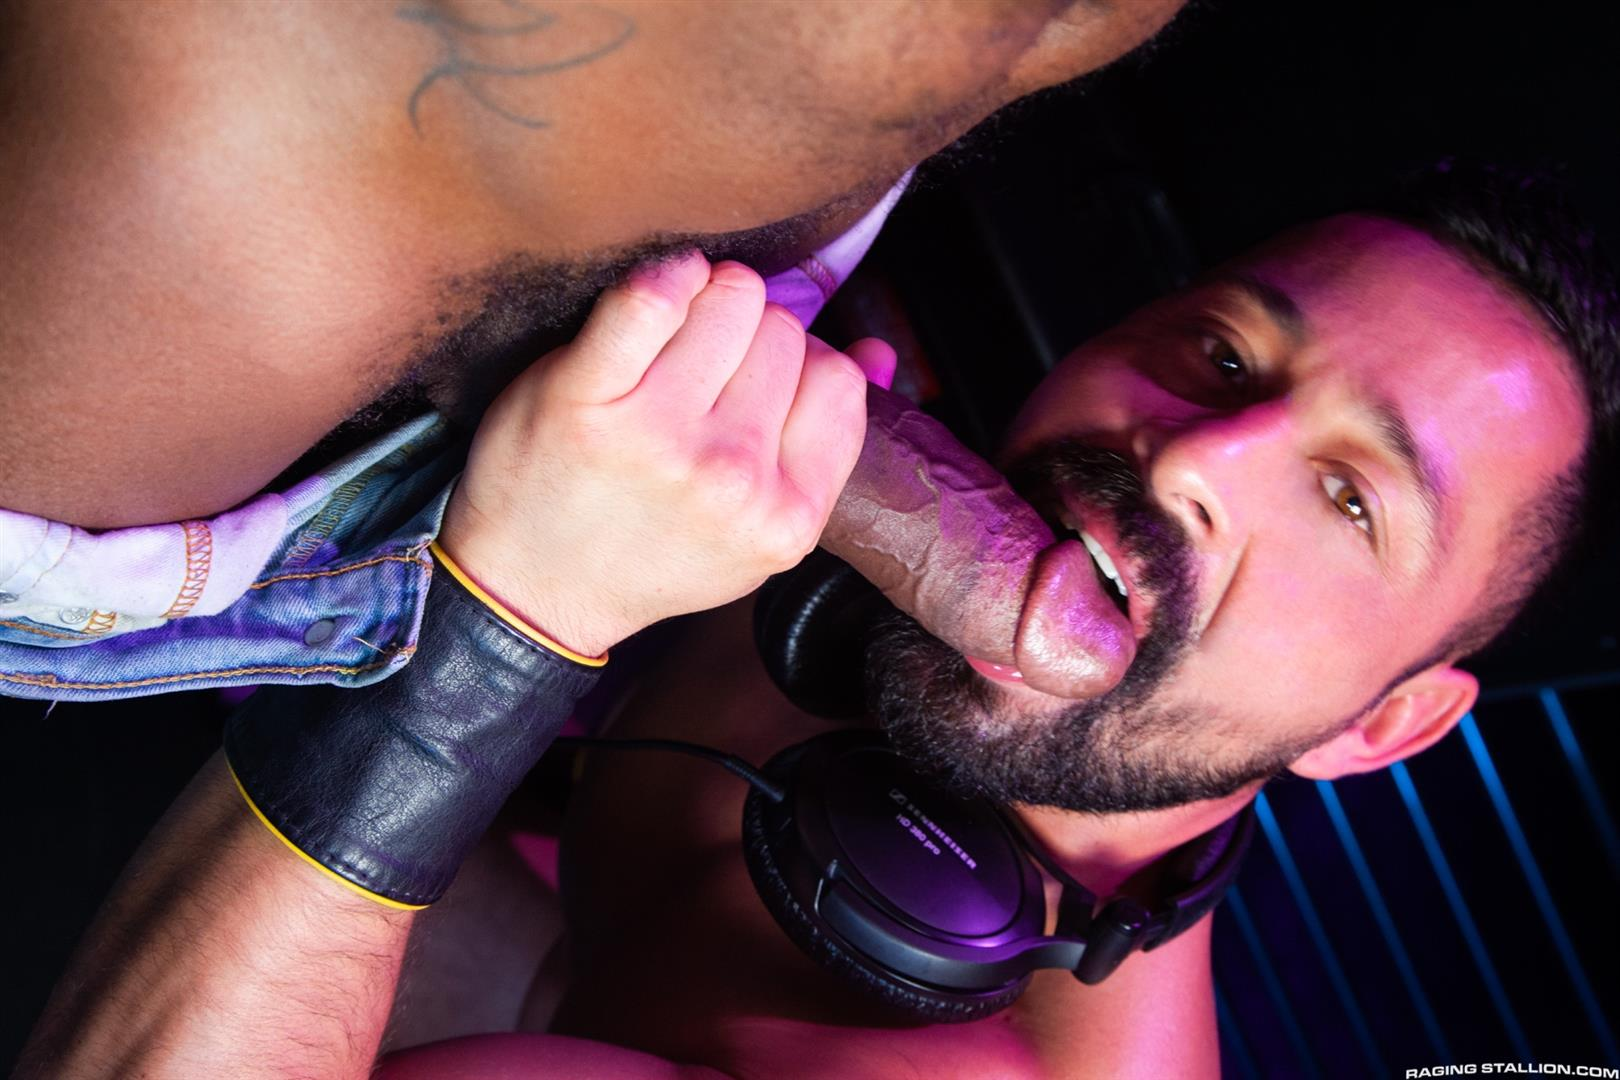 Raging-Stallion-Pheonix-Fellington-and-Cristian-Sam-Big-Black-Cocksucking-Video-11 Getting My Big Black Cock Sucked In The DJ Booth